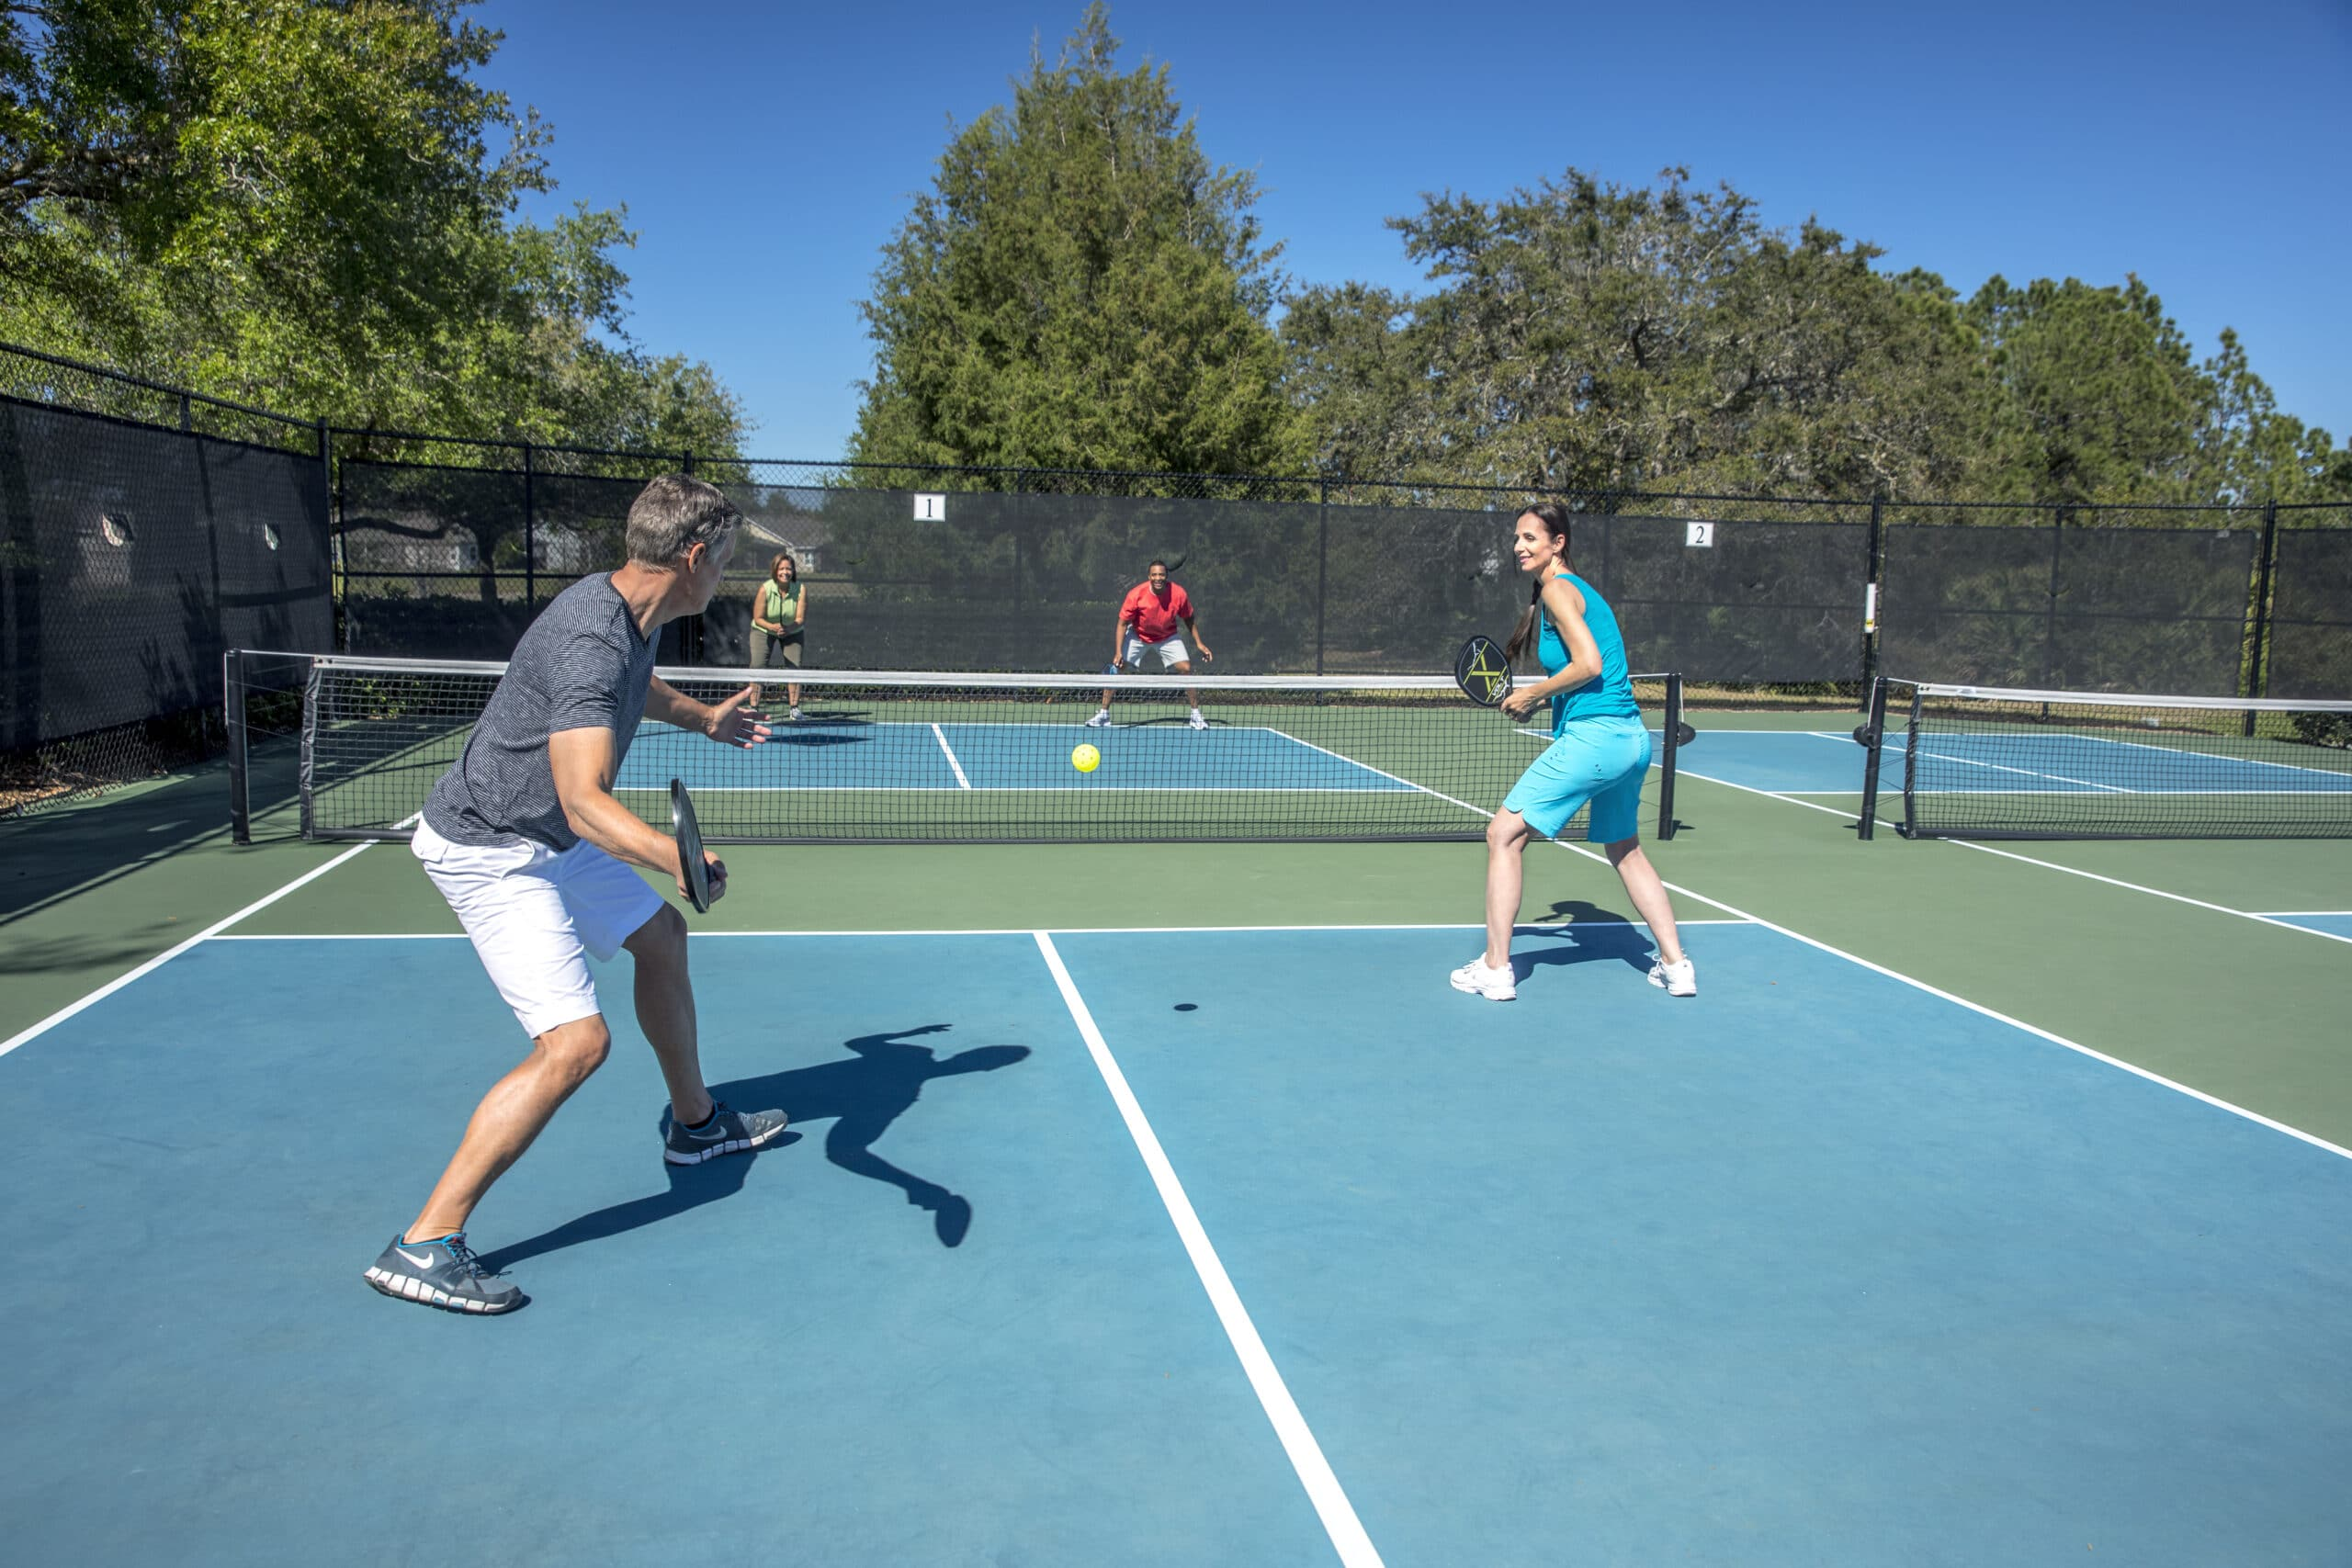 Largest Private Pickleball Facility in Georgia Coming Soon to Hoschton